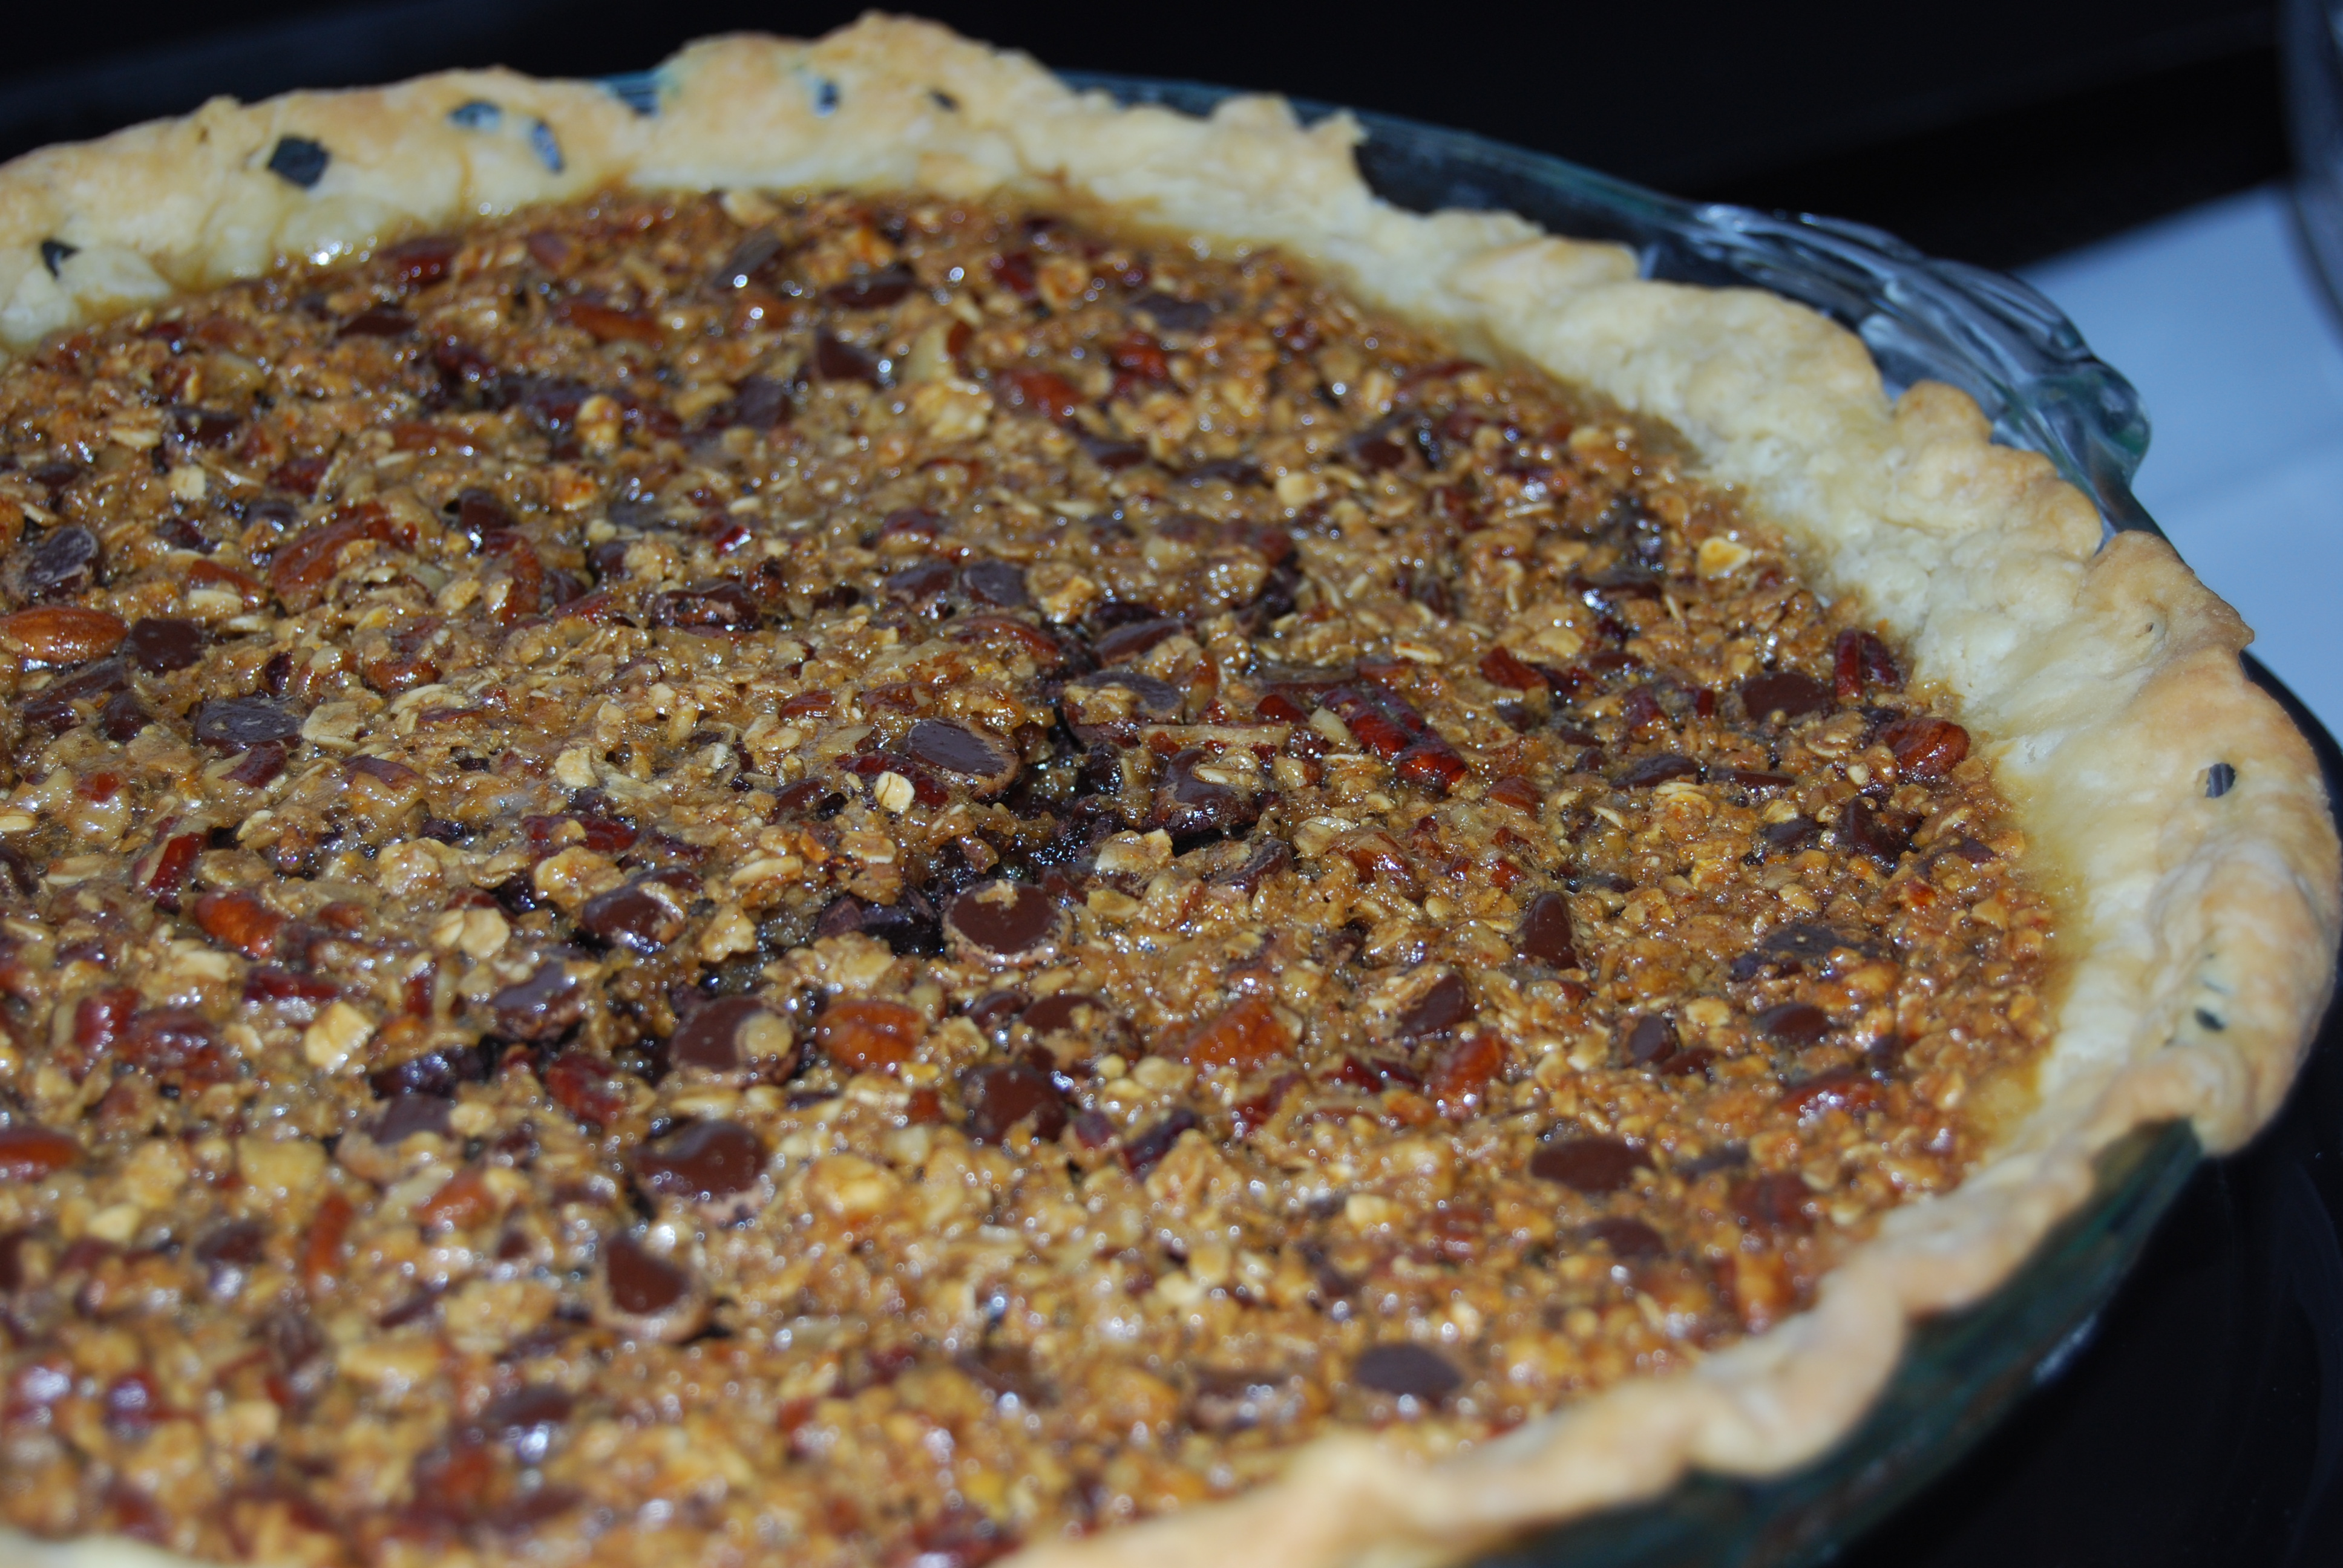 Chocolate Chip Oatmeal Pecan Pie - Macaroni and Cheesecake